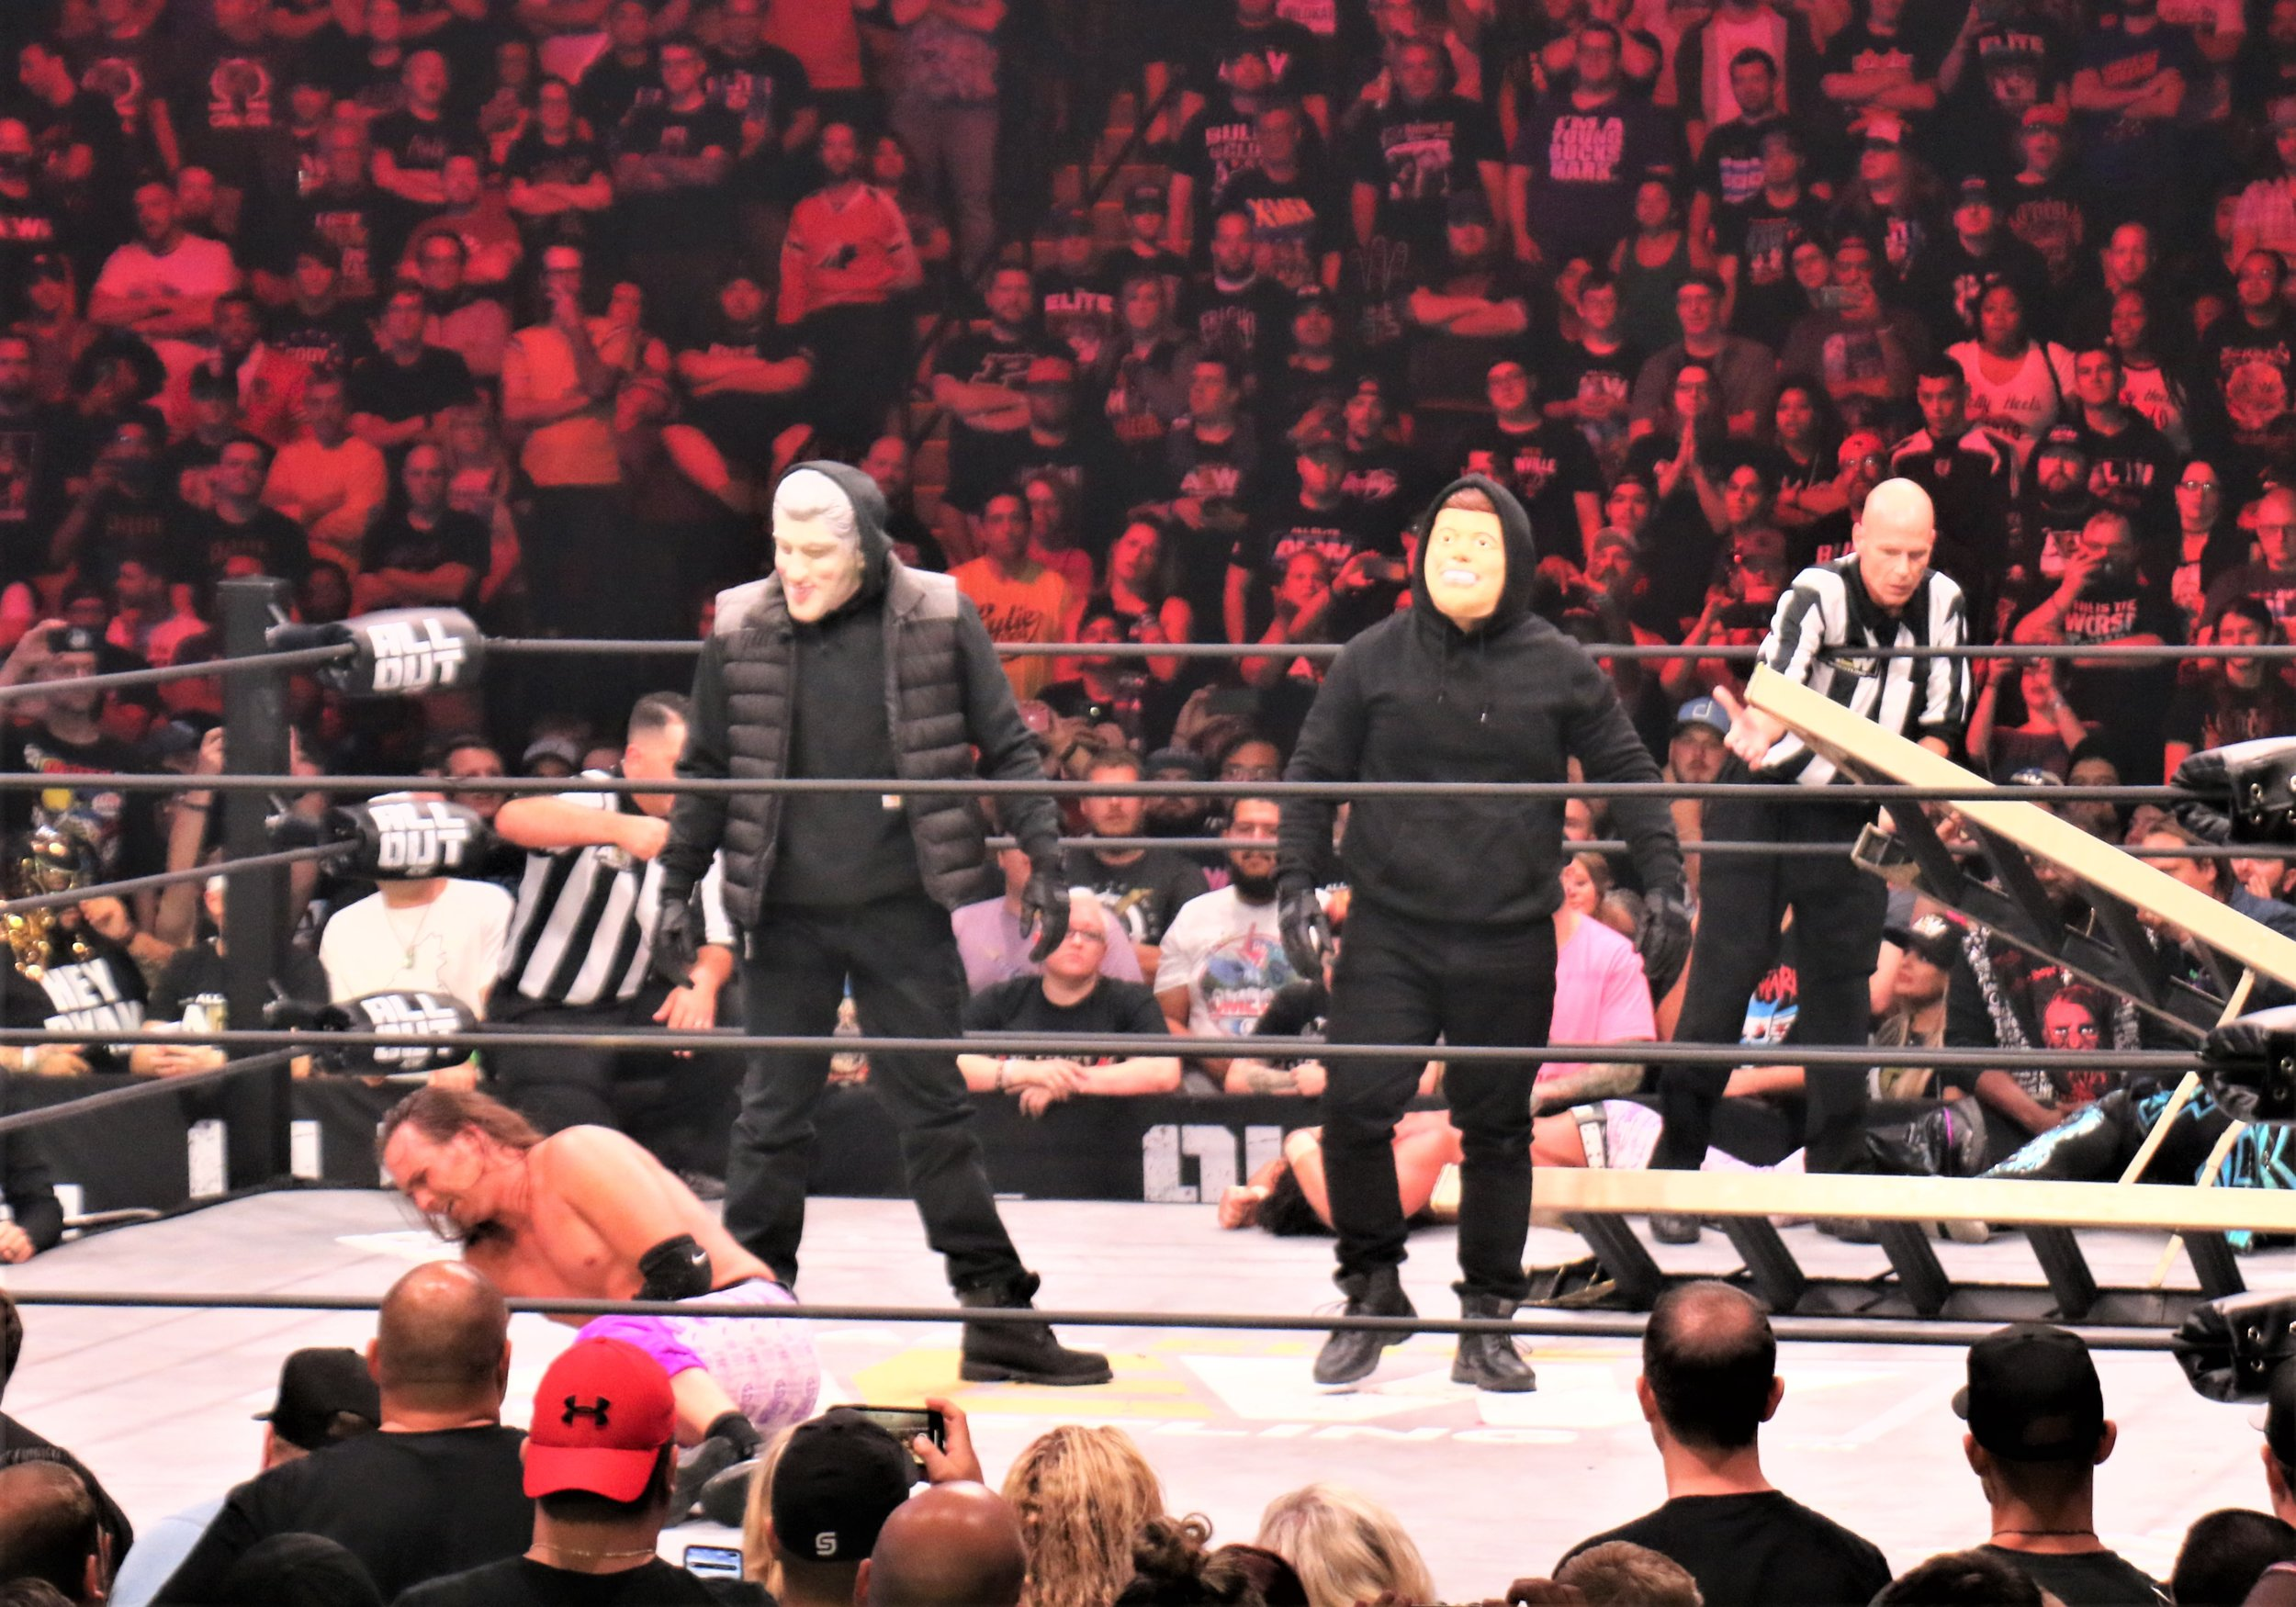 The Masked Men took down both teams after the match.